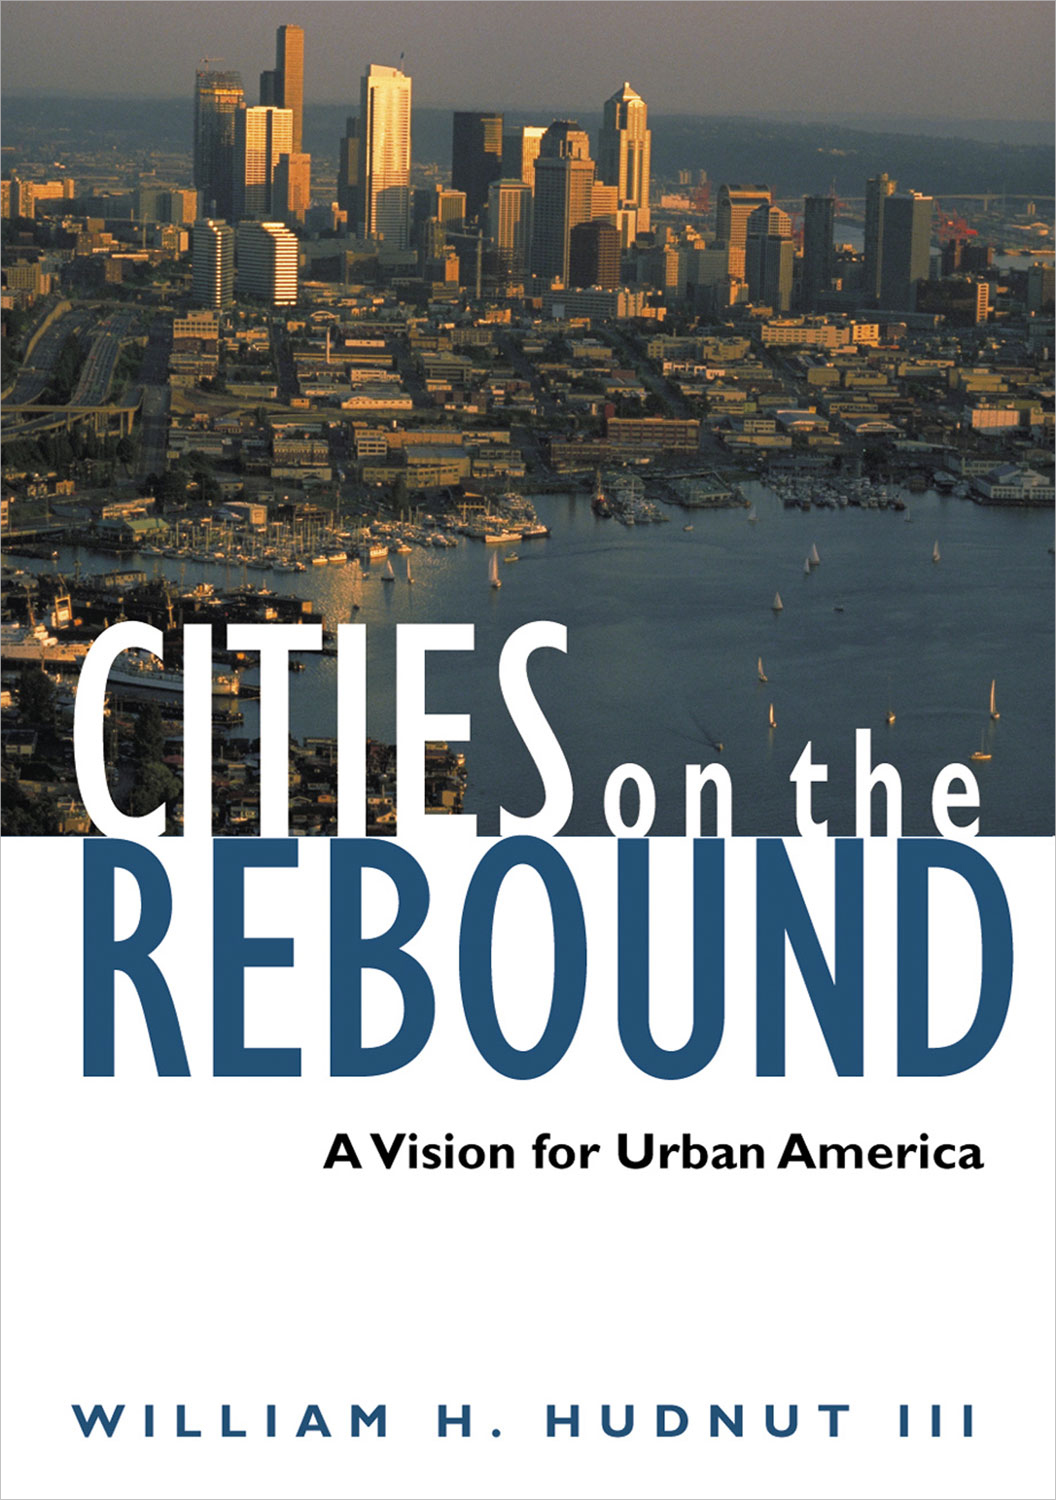 Cities on the Rebound: A Vision for Urban America